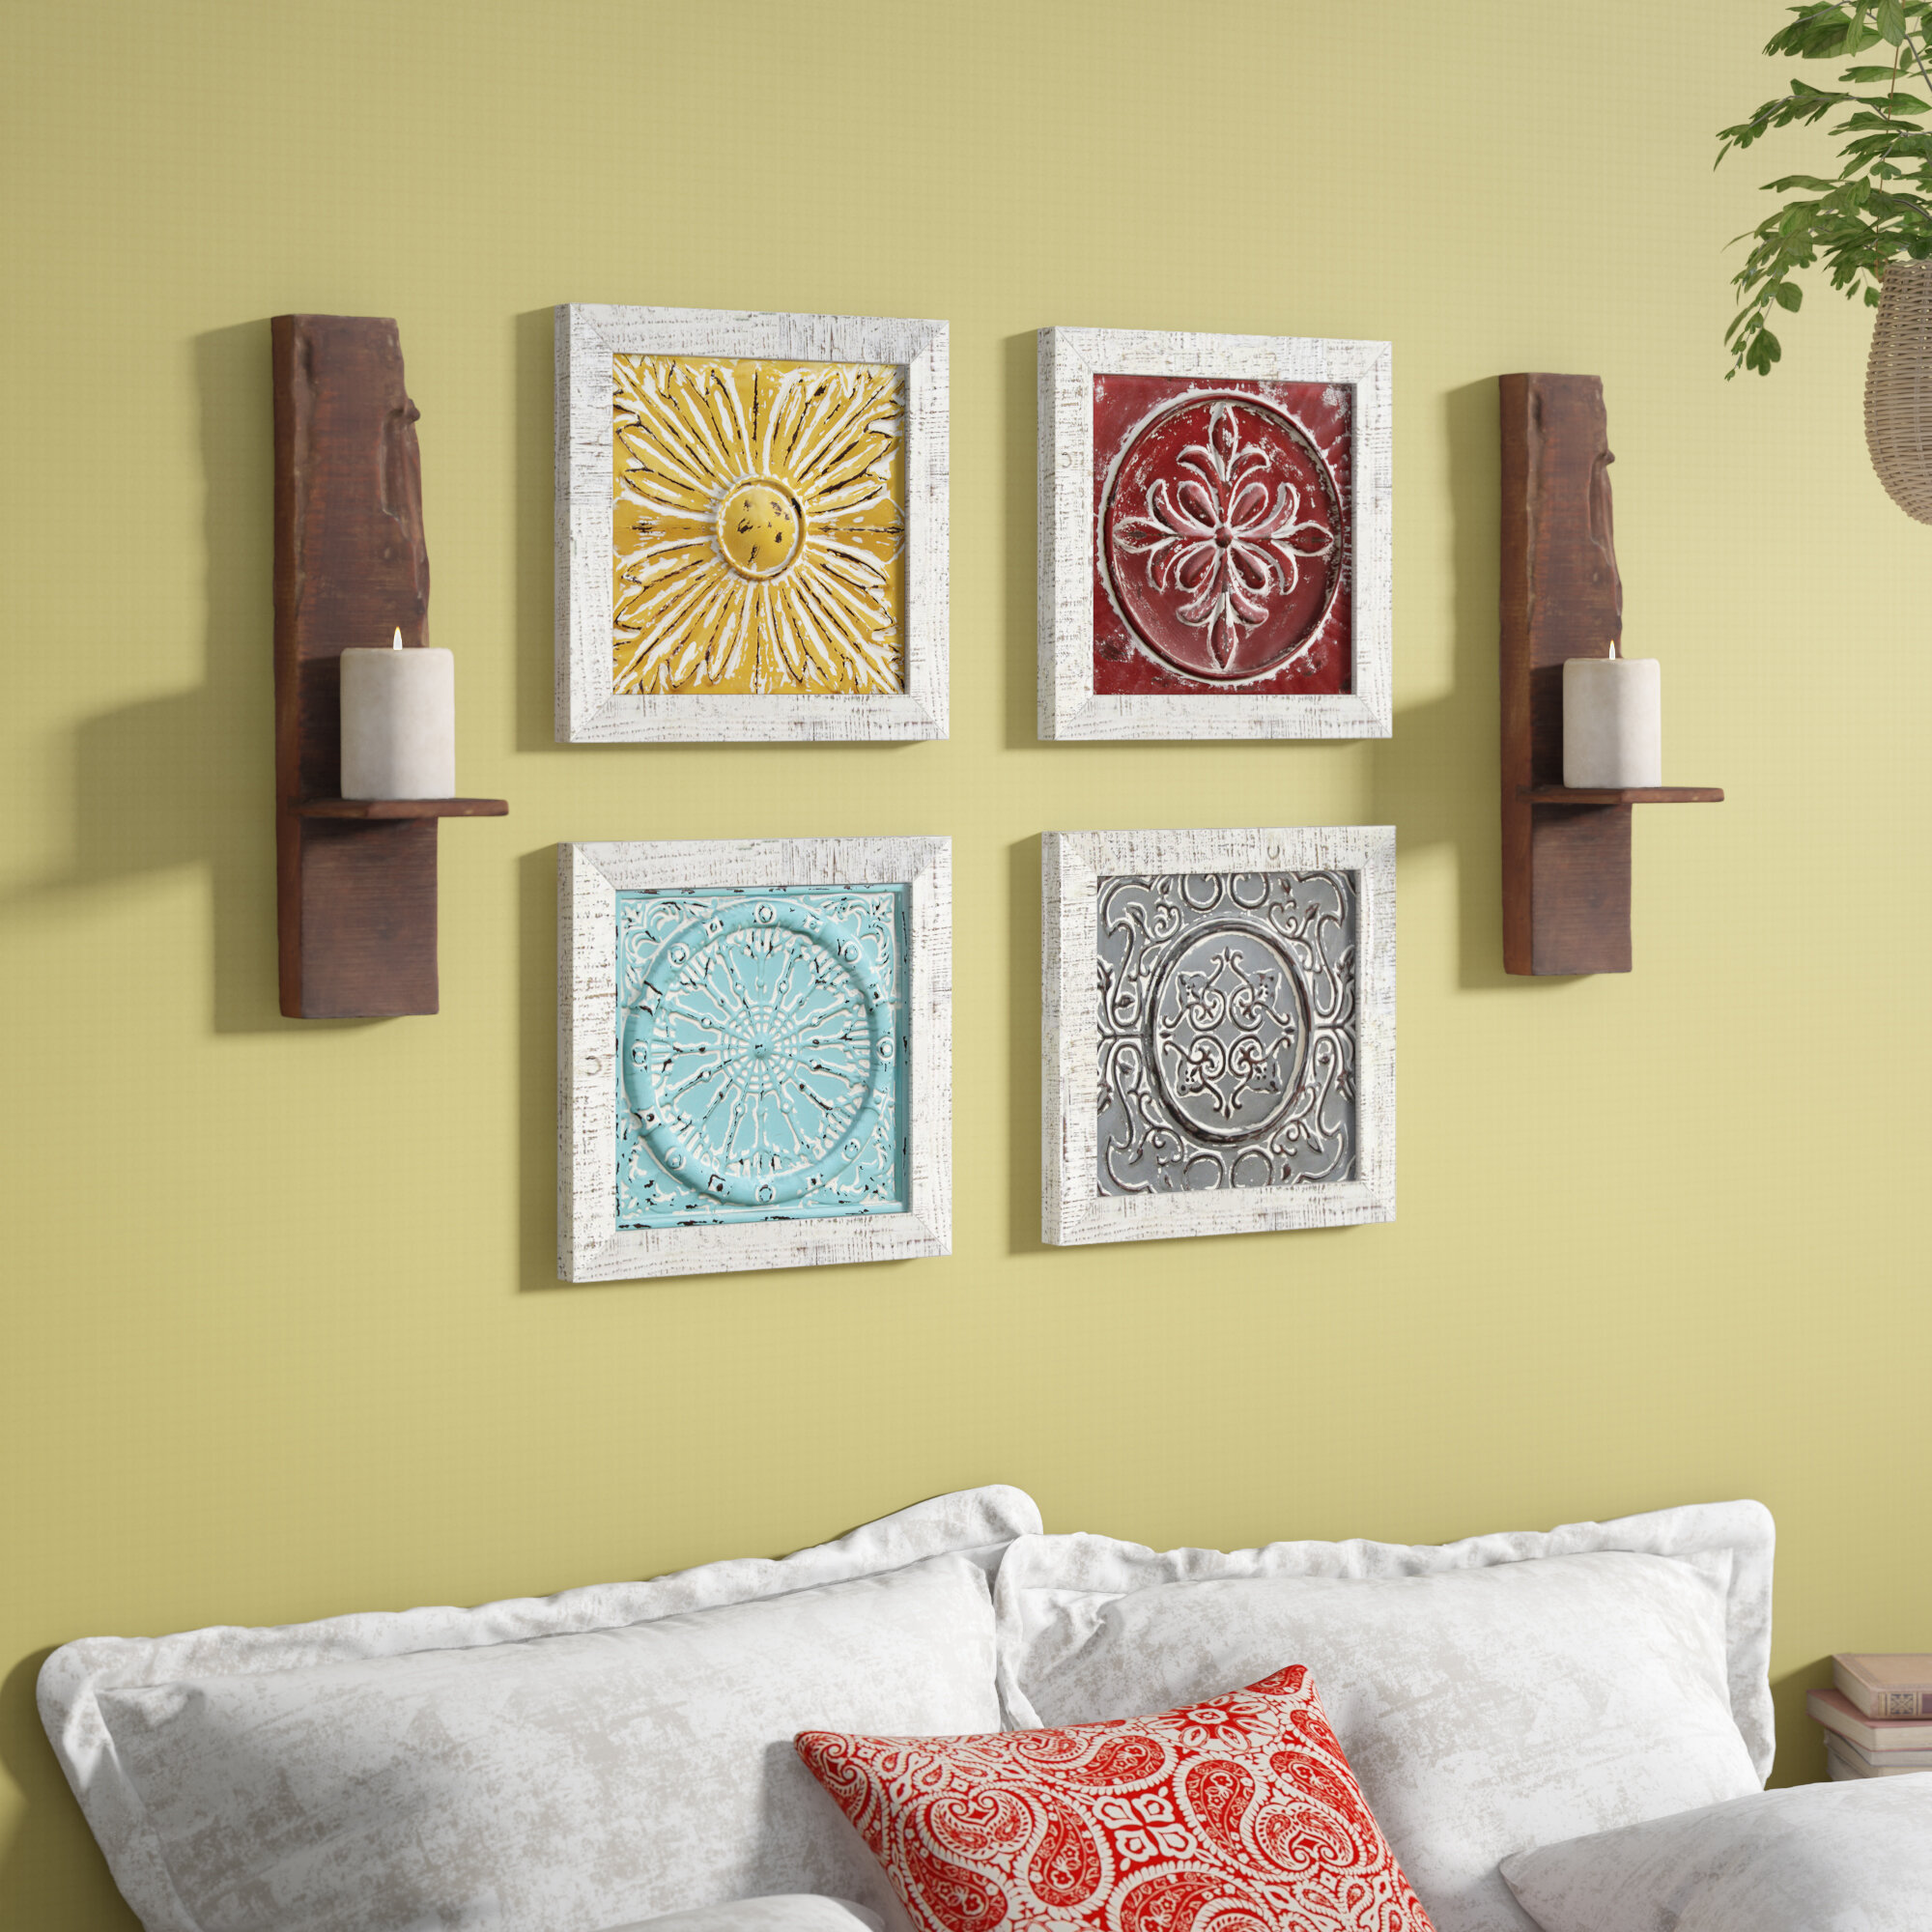 Bungalow Rose 4 Piece Accent Tile Wall Décor Set & Reviews | Wayfair